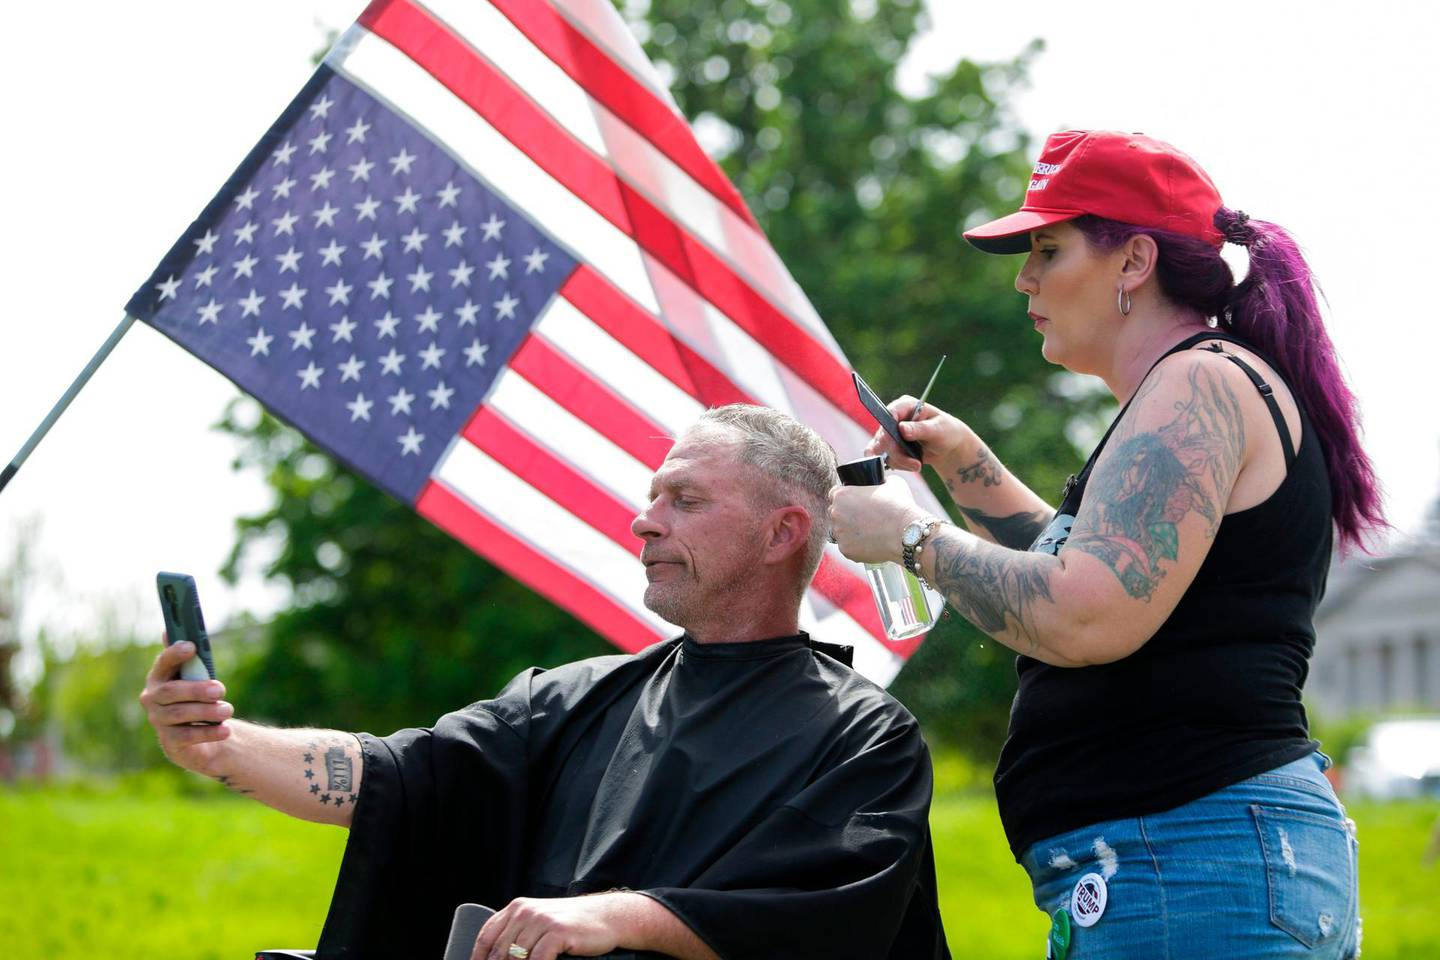 Trump supporter Laina Moore of Elma, Washington gives a haircut to Darren Culbertson of Yelm, Washington on the lawn of the State Capitol as people protest Governor Jay Inslee's stay-at-home order which prohibits barbers and stylists from taking clients, in Olympia, Washington on May 9, 2020. The Washington State Patrol estimates about 1,500 people rallied against Governor Jay Inslee's stay-at-home order. / AFP / Jason Redmond